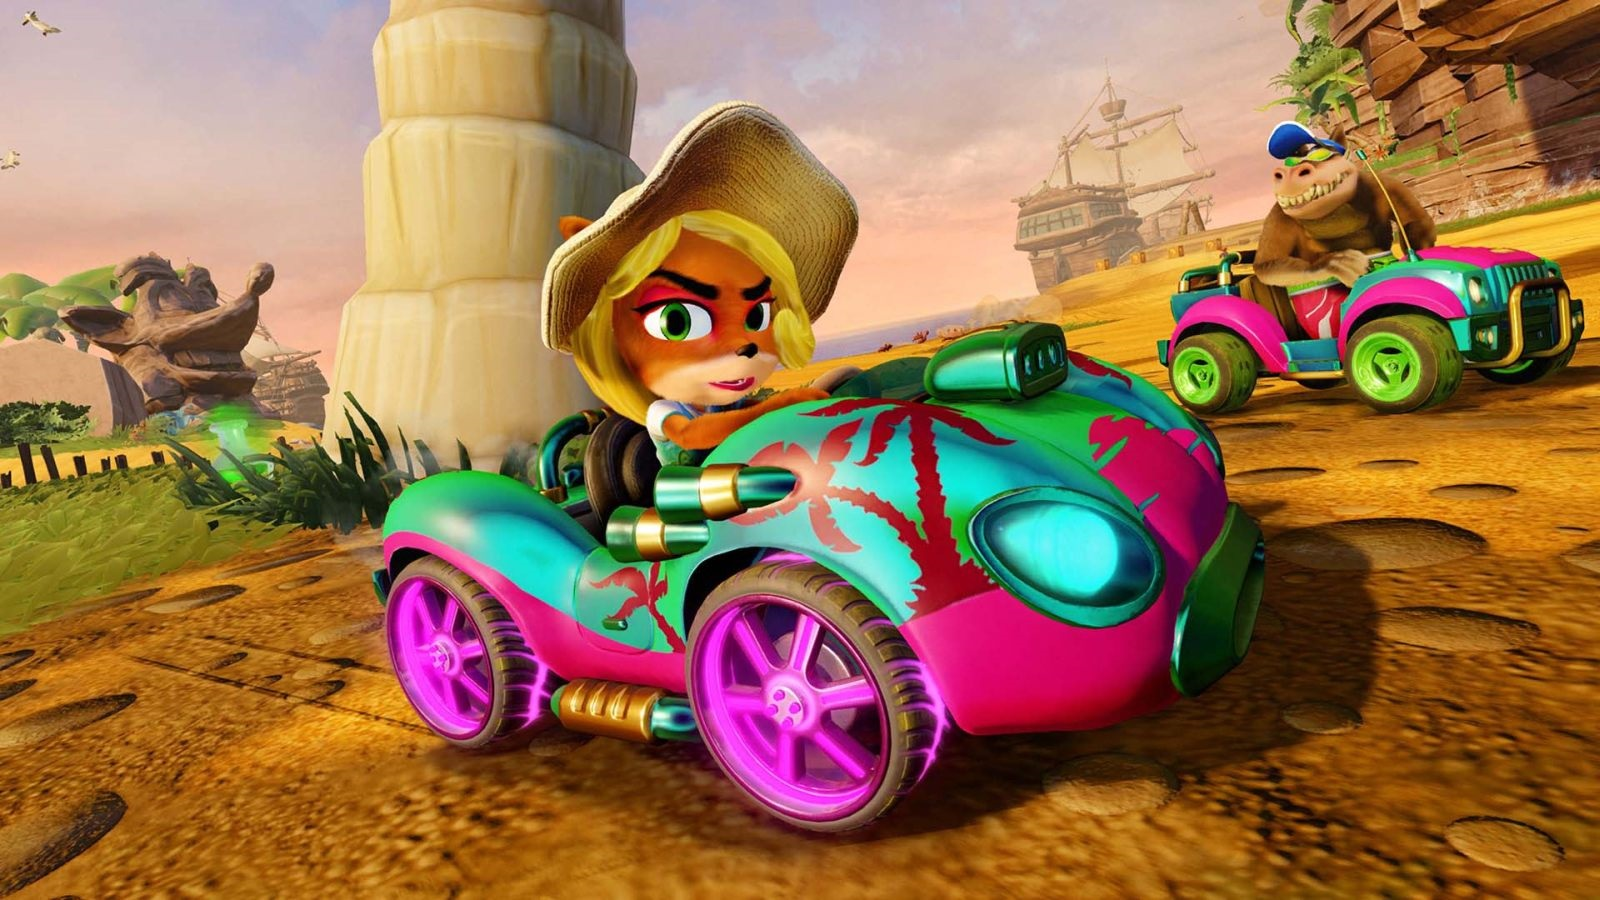 Crash Team Racing Nitro-Fueled; screenshot: Tawna